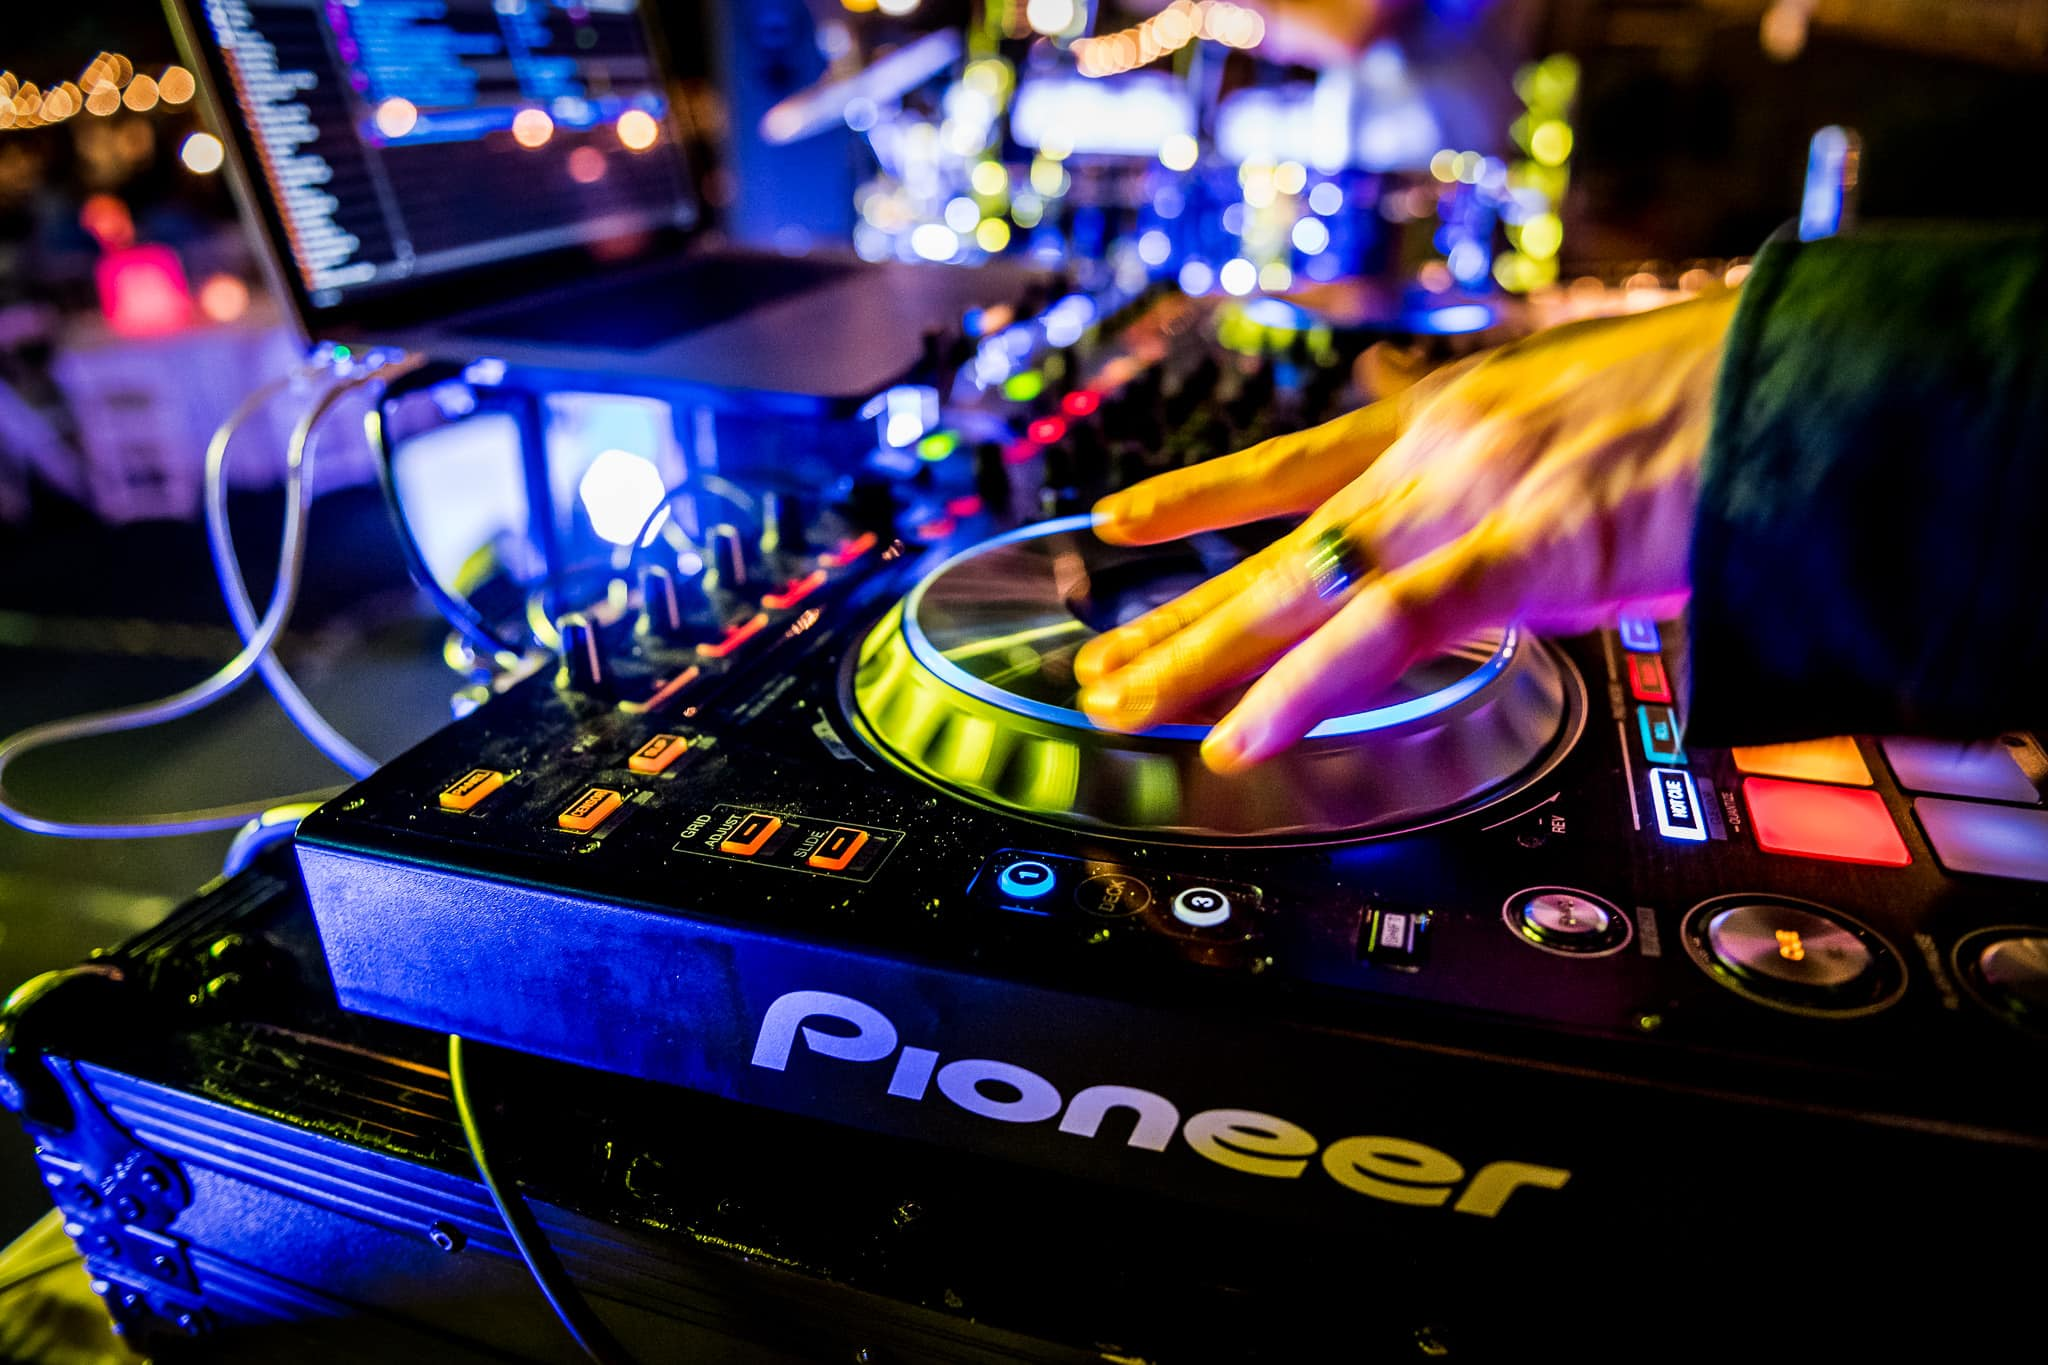 Close up of the DJ's hands on the turntables at the Food Truck party during an annual EY corporate event